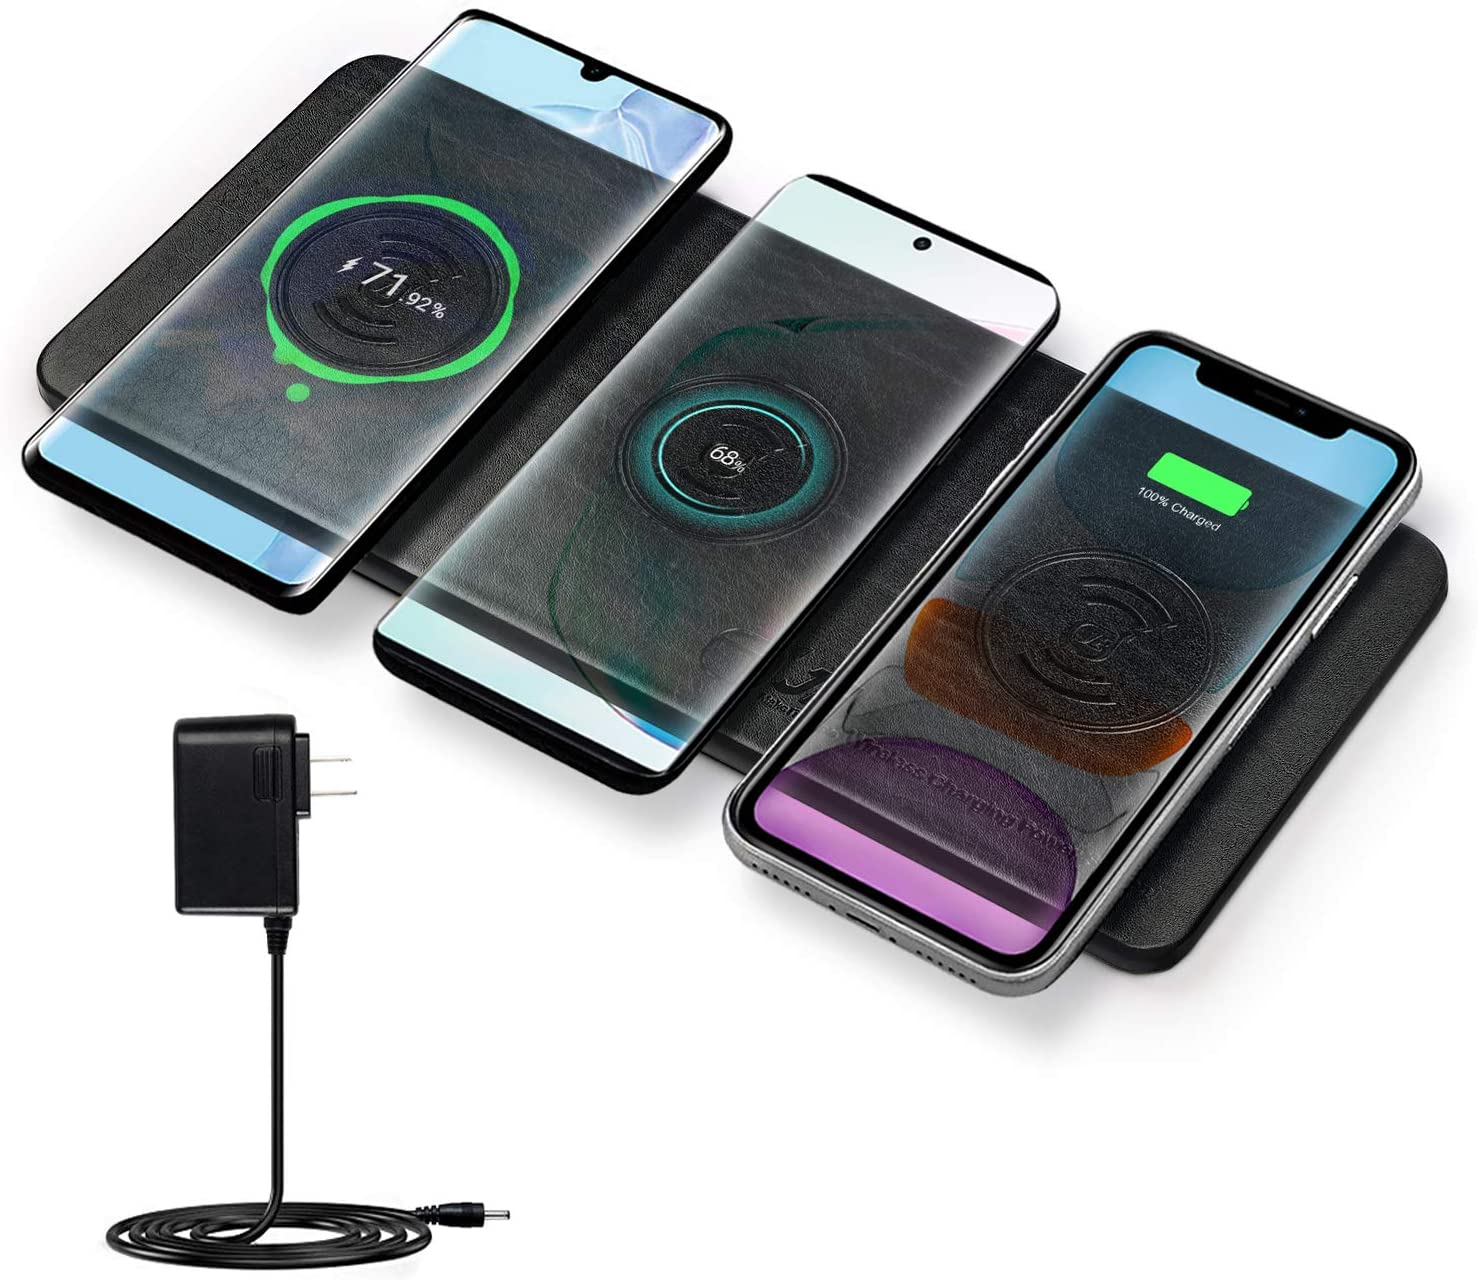 Cargador Inalámbrico Rápido, JE 30W Qi Fast Wireless Charger para iPhone 11/11 Pro/11 Pro Max/XS MAX/XR/XS/X/8Plus/8, Airpods, Samsung Galaxy Serie, Xiaomi, Huawei